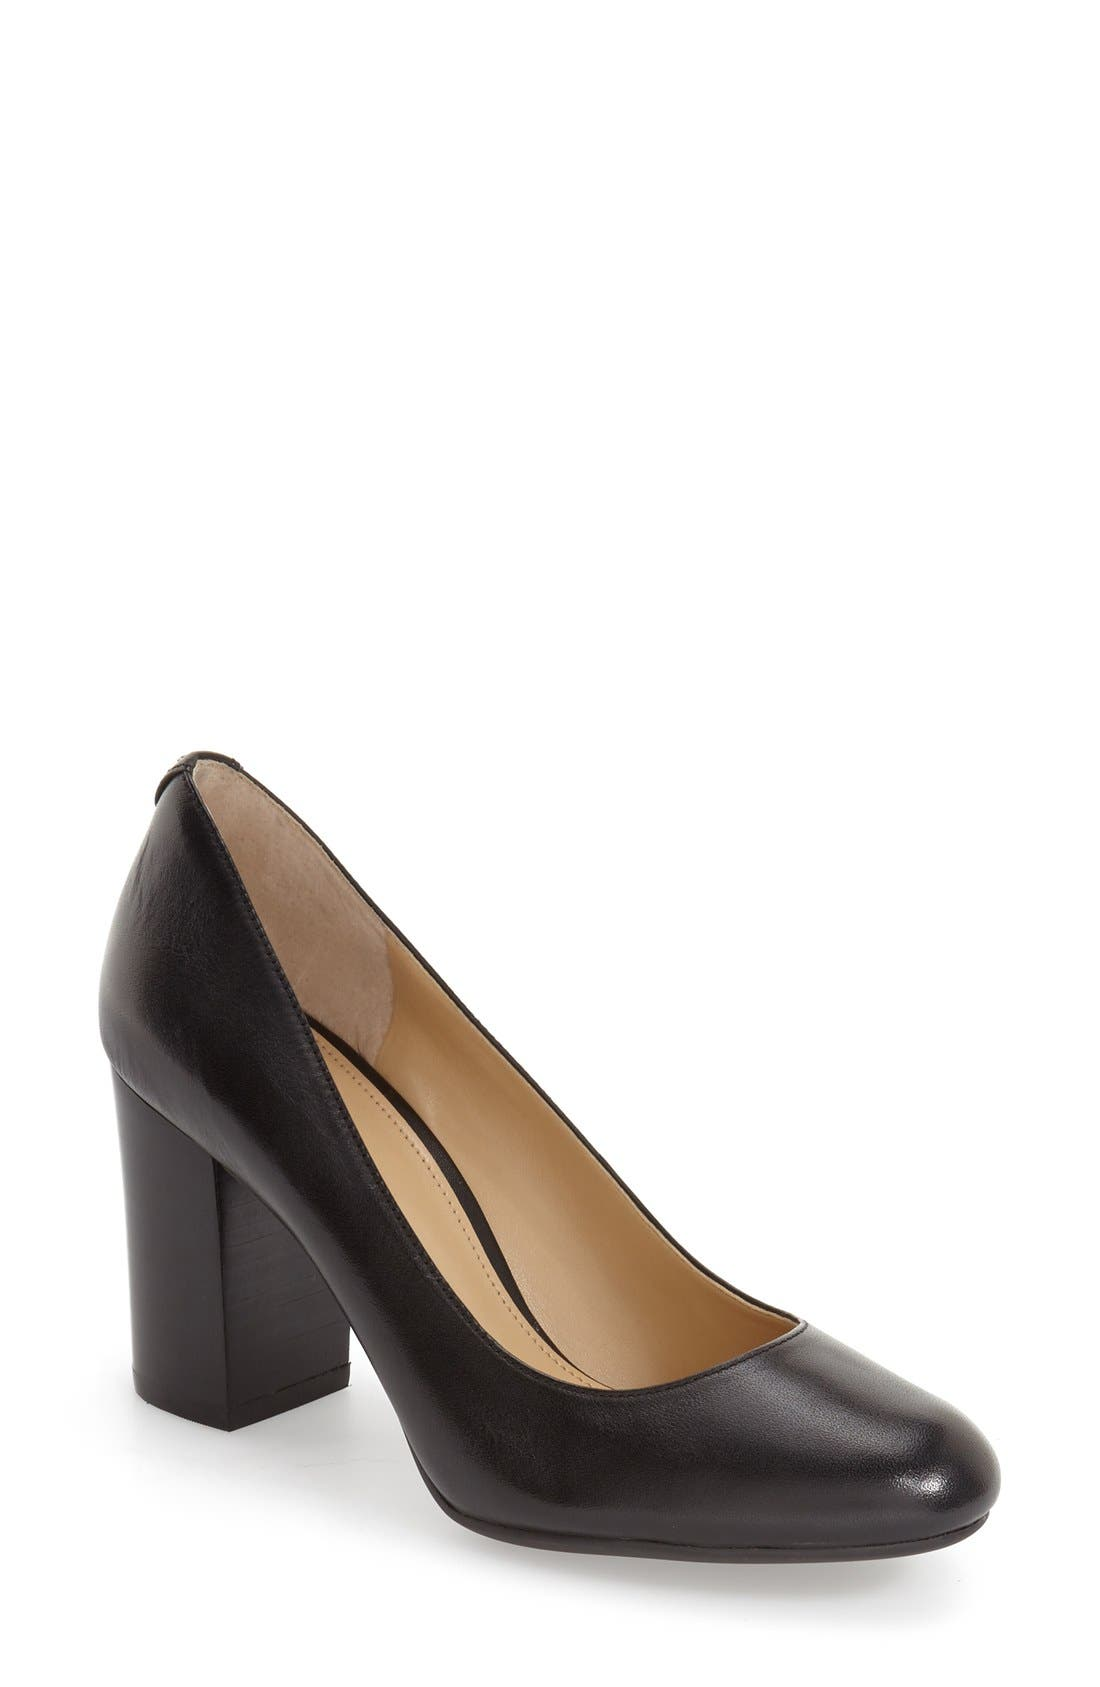 'Lucy - Flex' Round Toe Pump,                             Main thumbnail 1, color,